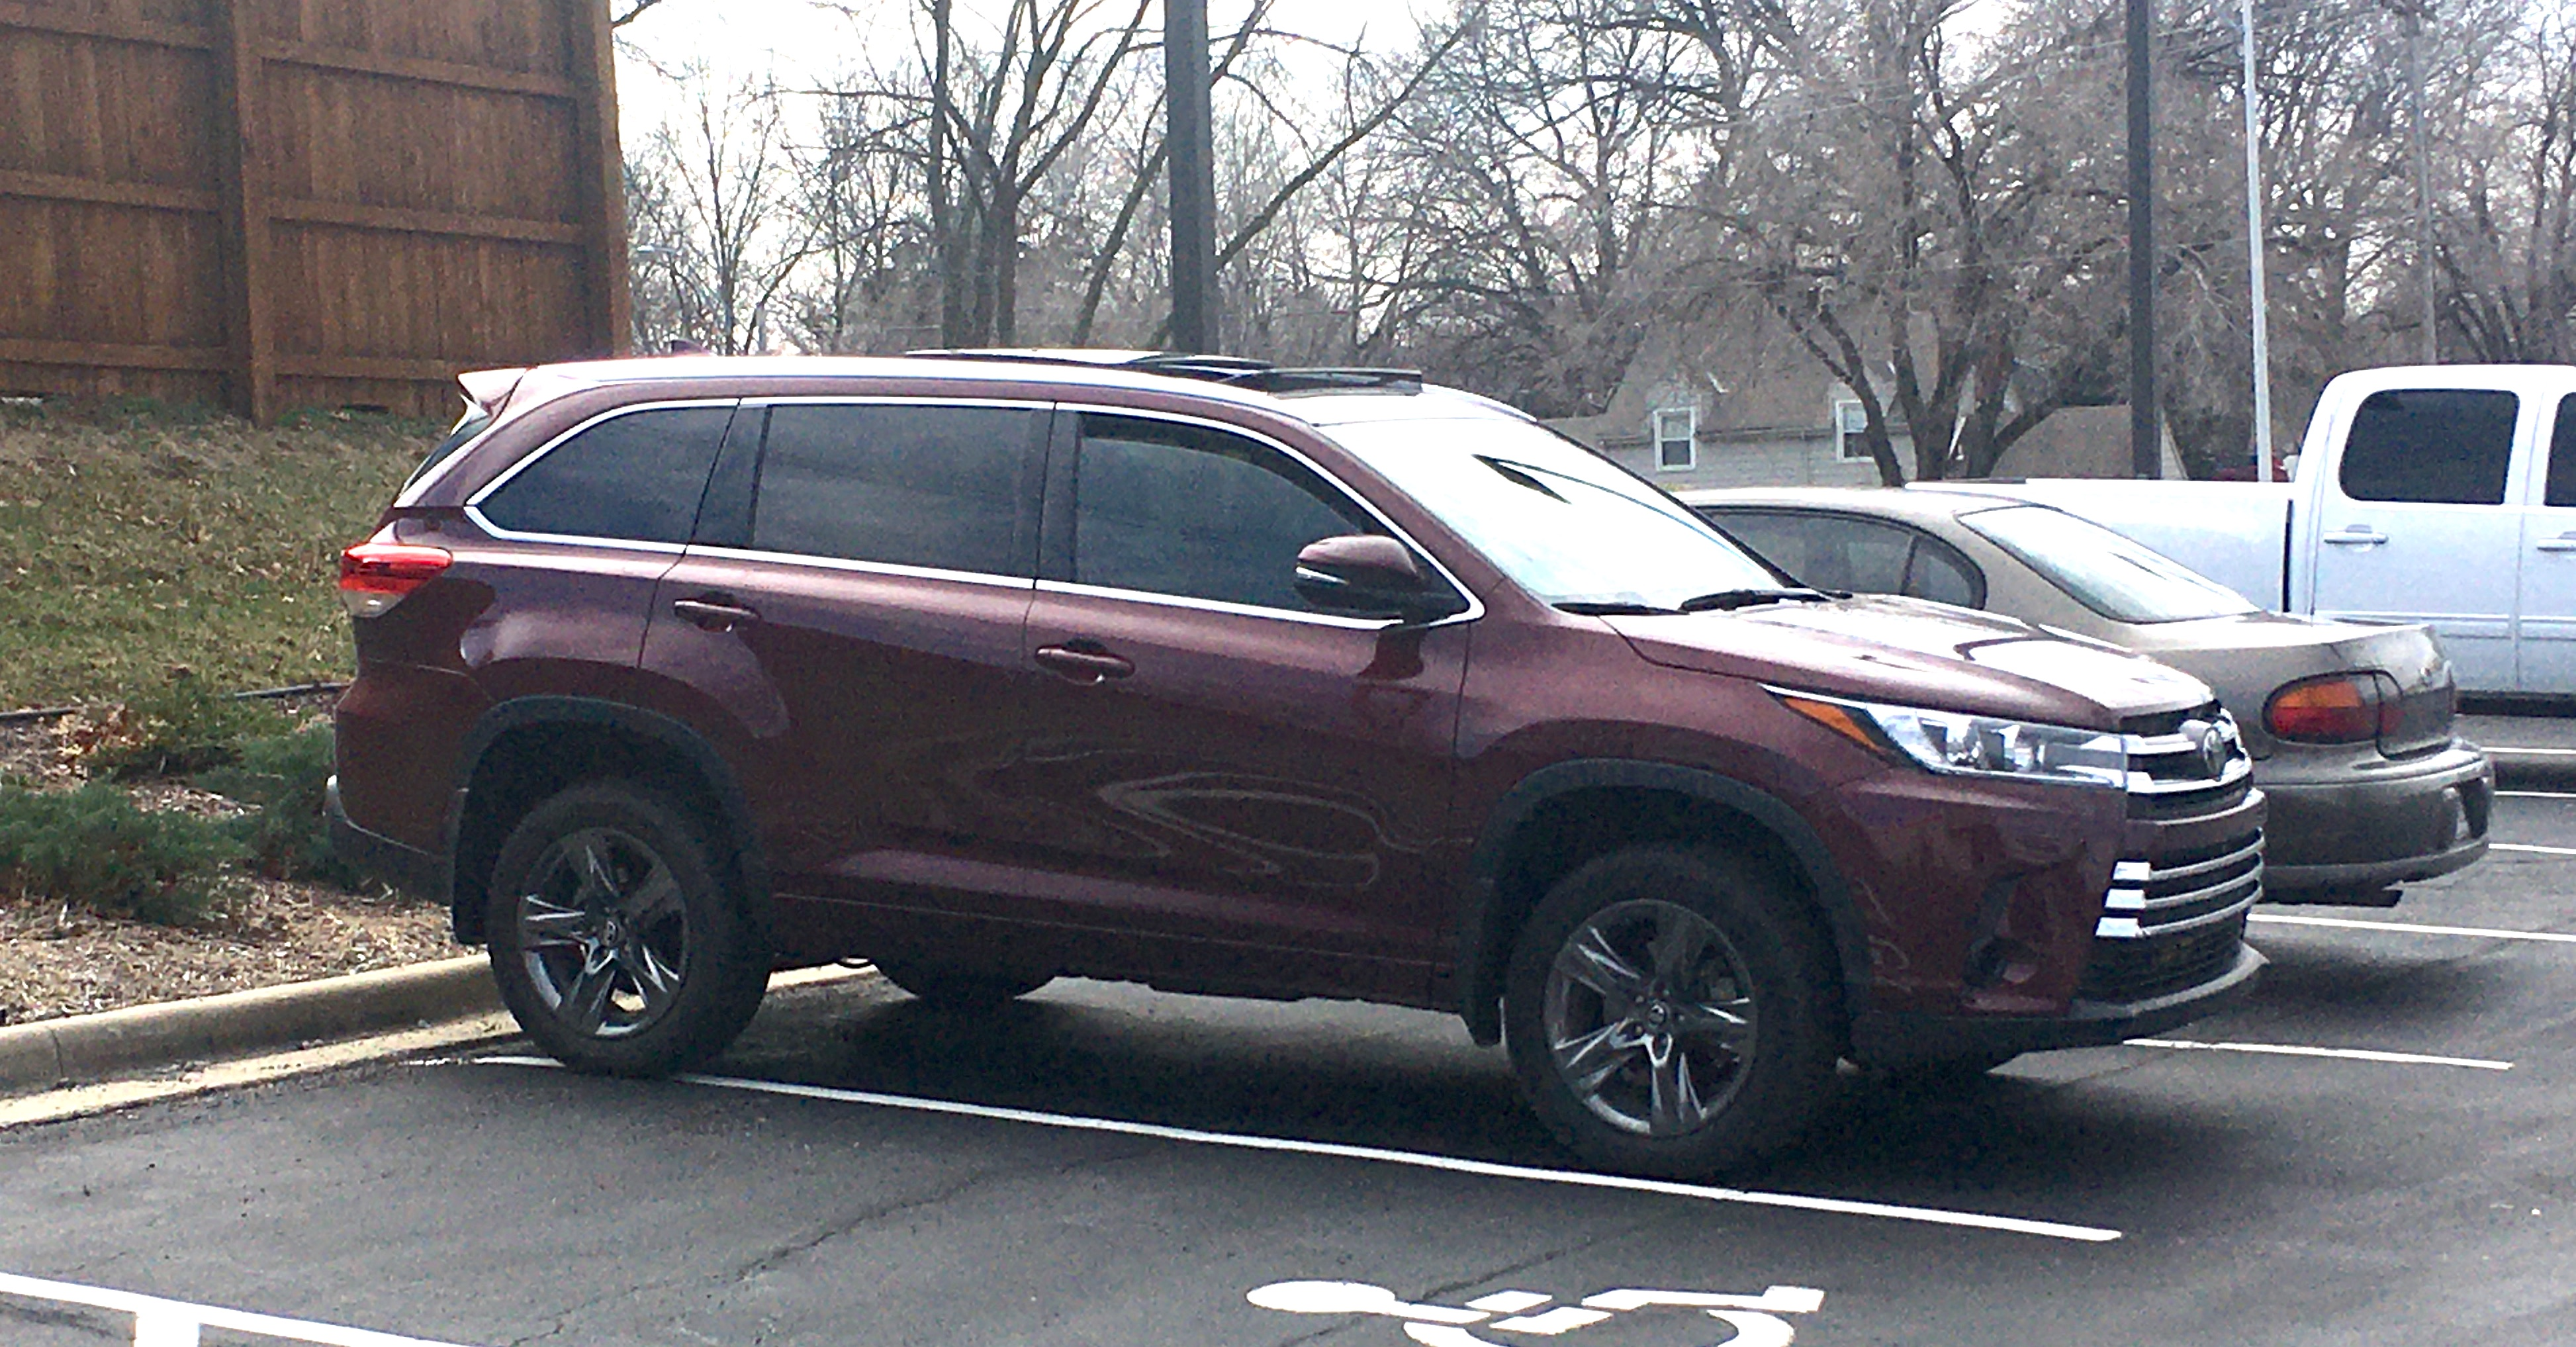 2019 highlander lift kit toyota nation forum 2019 highlander lift kit toyota